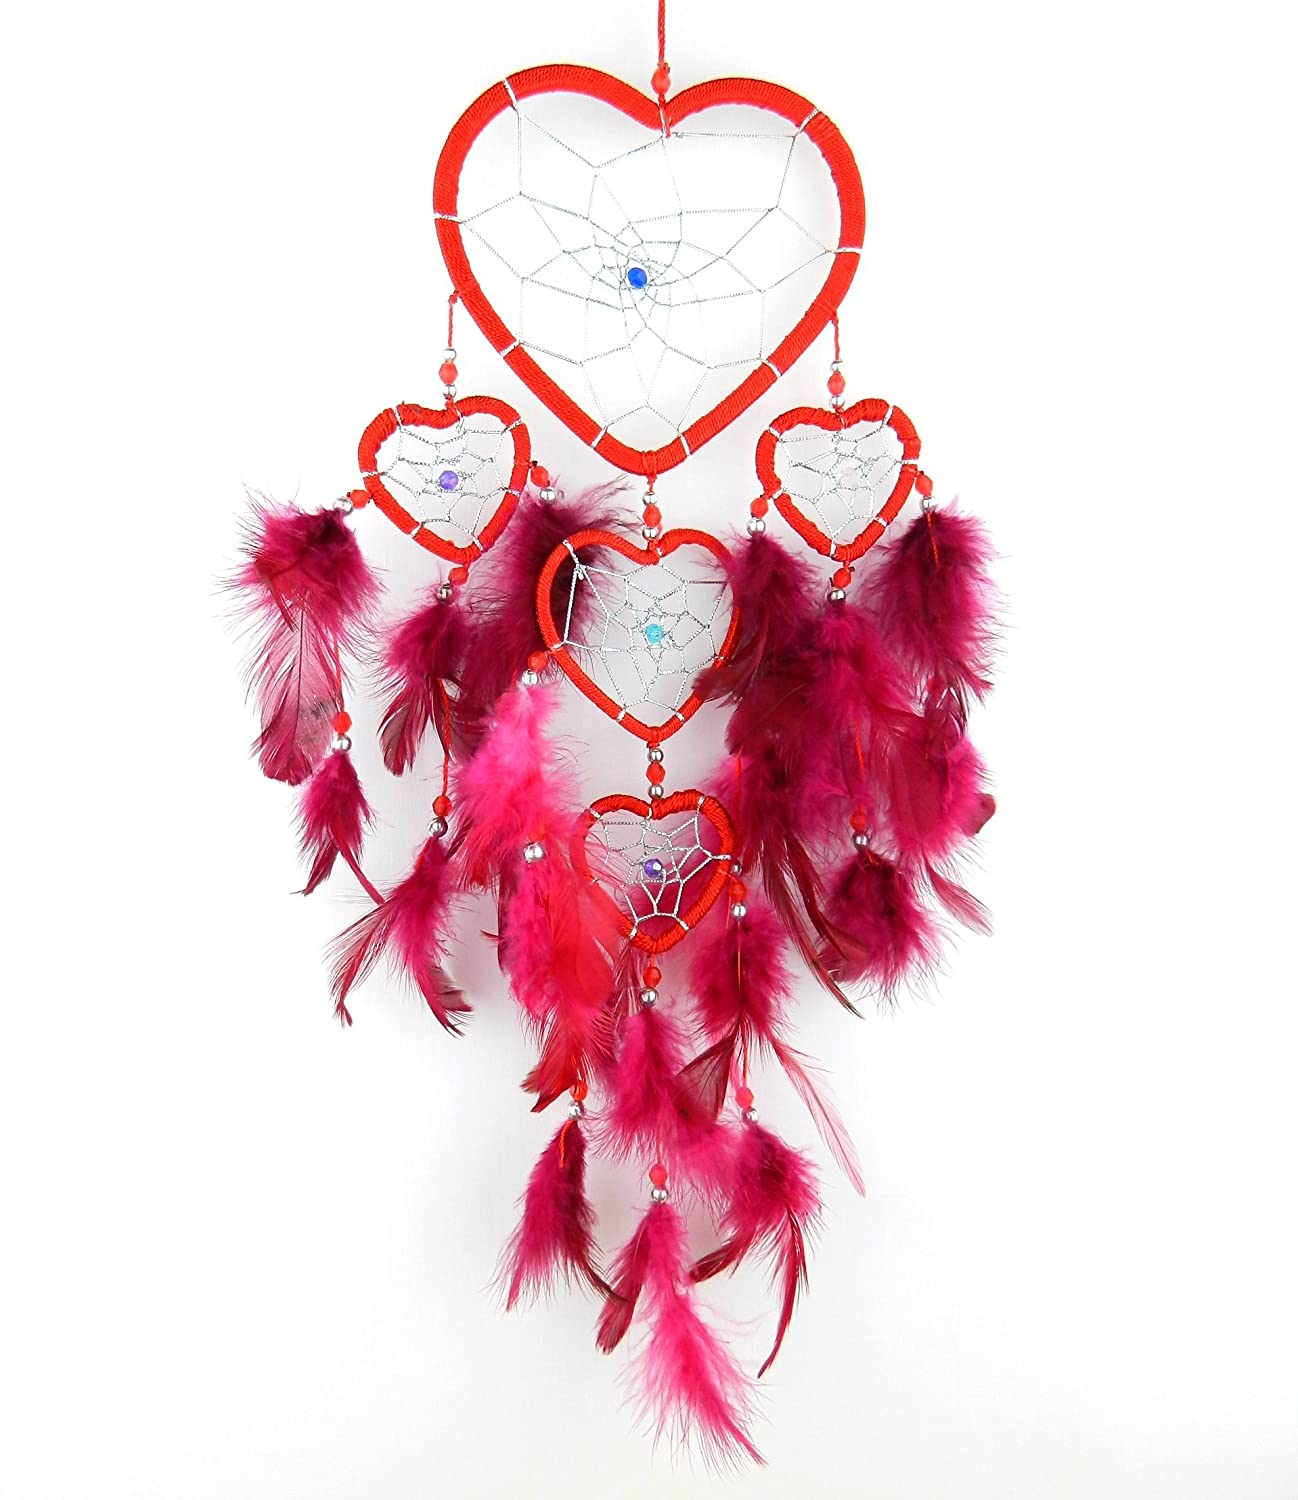 Bali unbranded DREAM CATCHER HEART silver centre dreamcatcher red, blue, pink Bali dream catcher unbranded